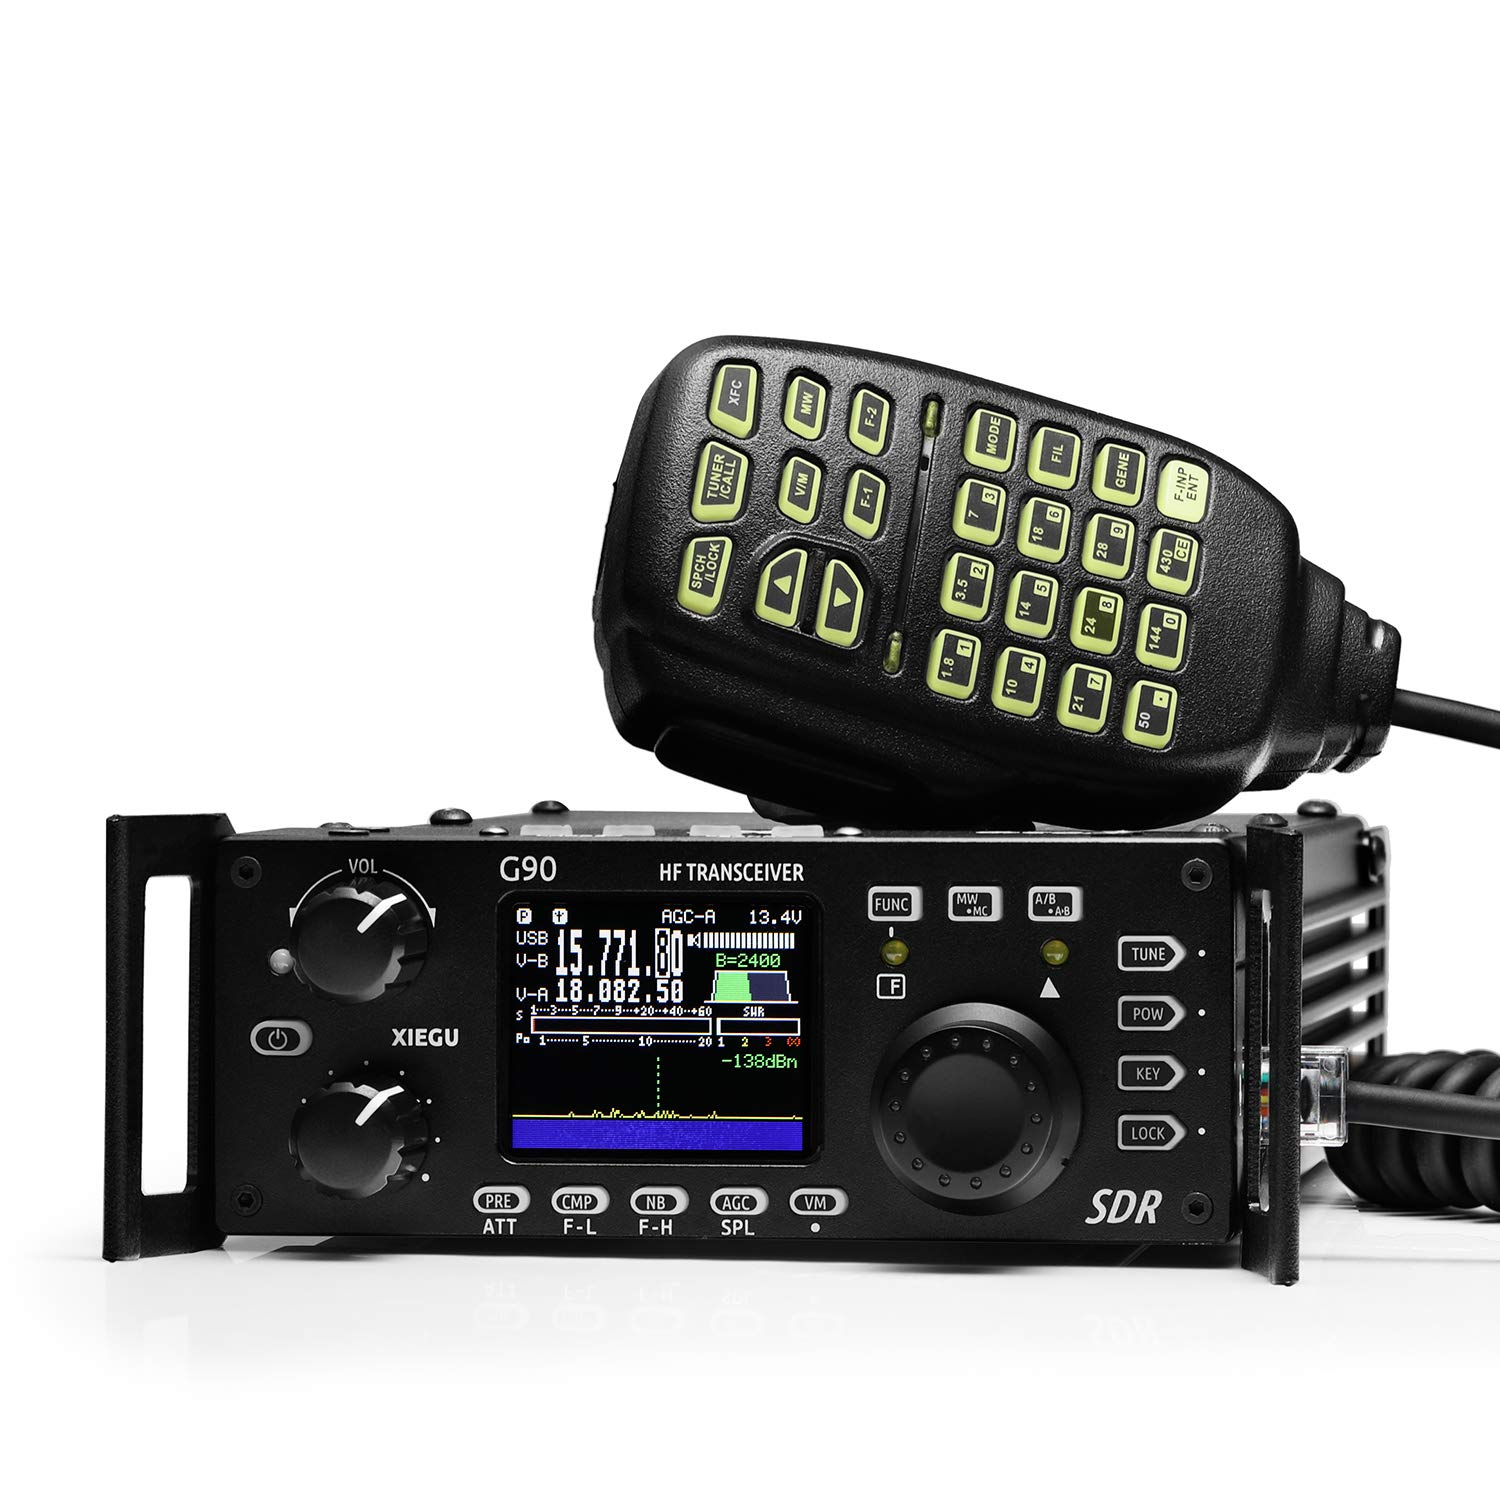 Xiegu G90 HF Amateur Radio Transceiver 20W SSB/CW/AM/FM 0.5-30MHz SDR Structure with Built-in Auto Antenna Tuner by Xiegu